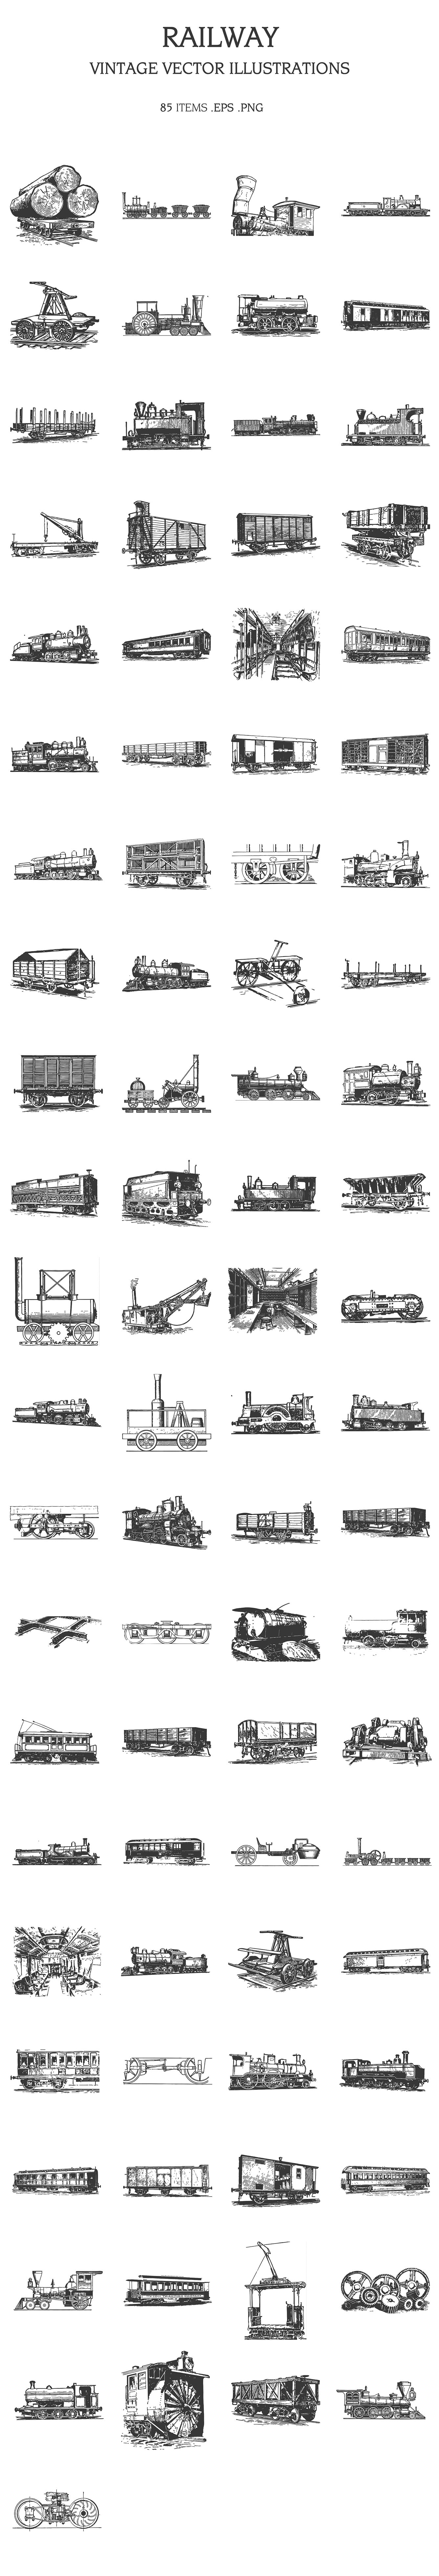 Railway tracks and stations of different times - from wooden runners to modern times.